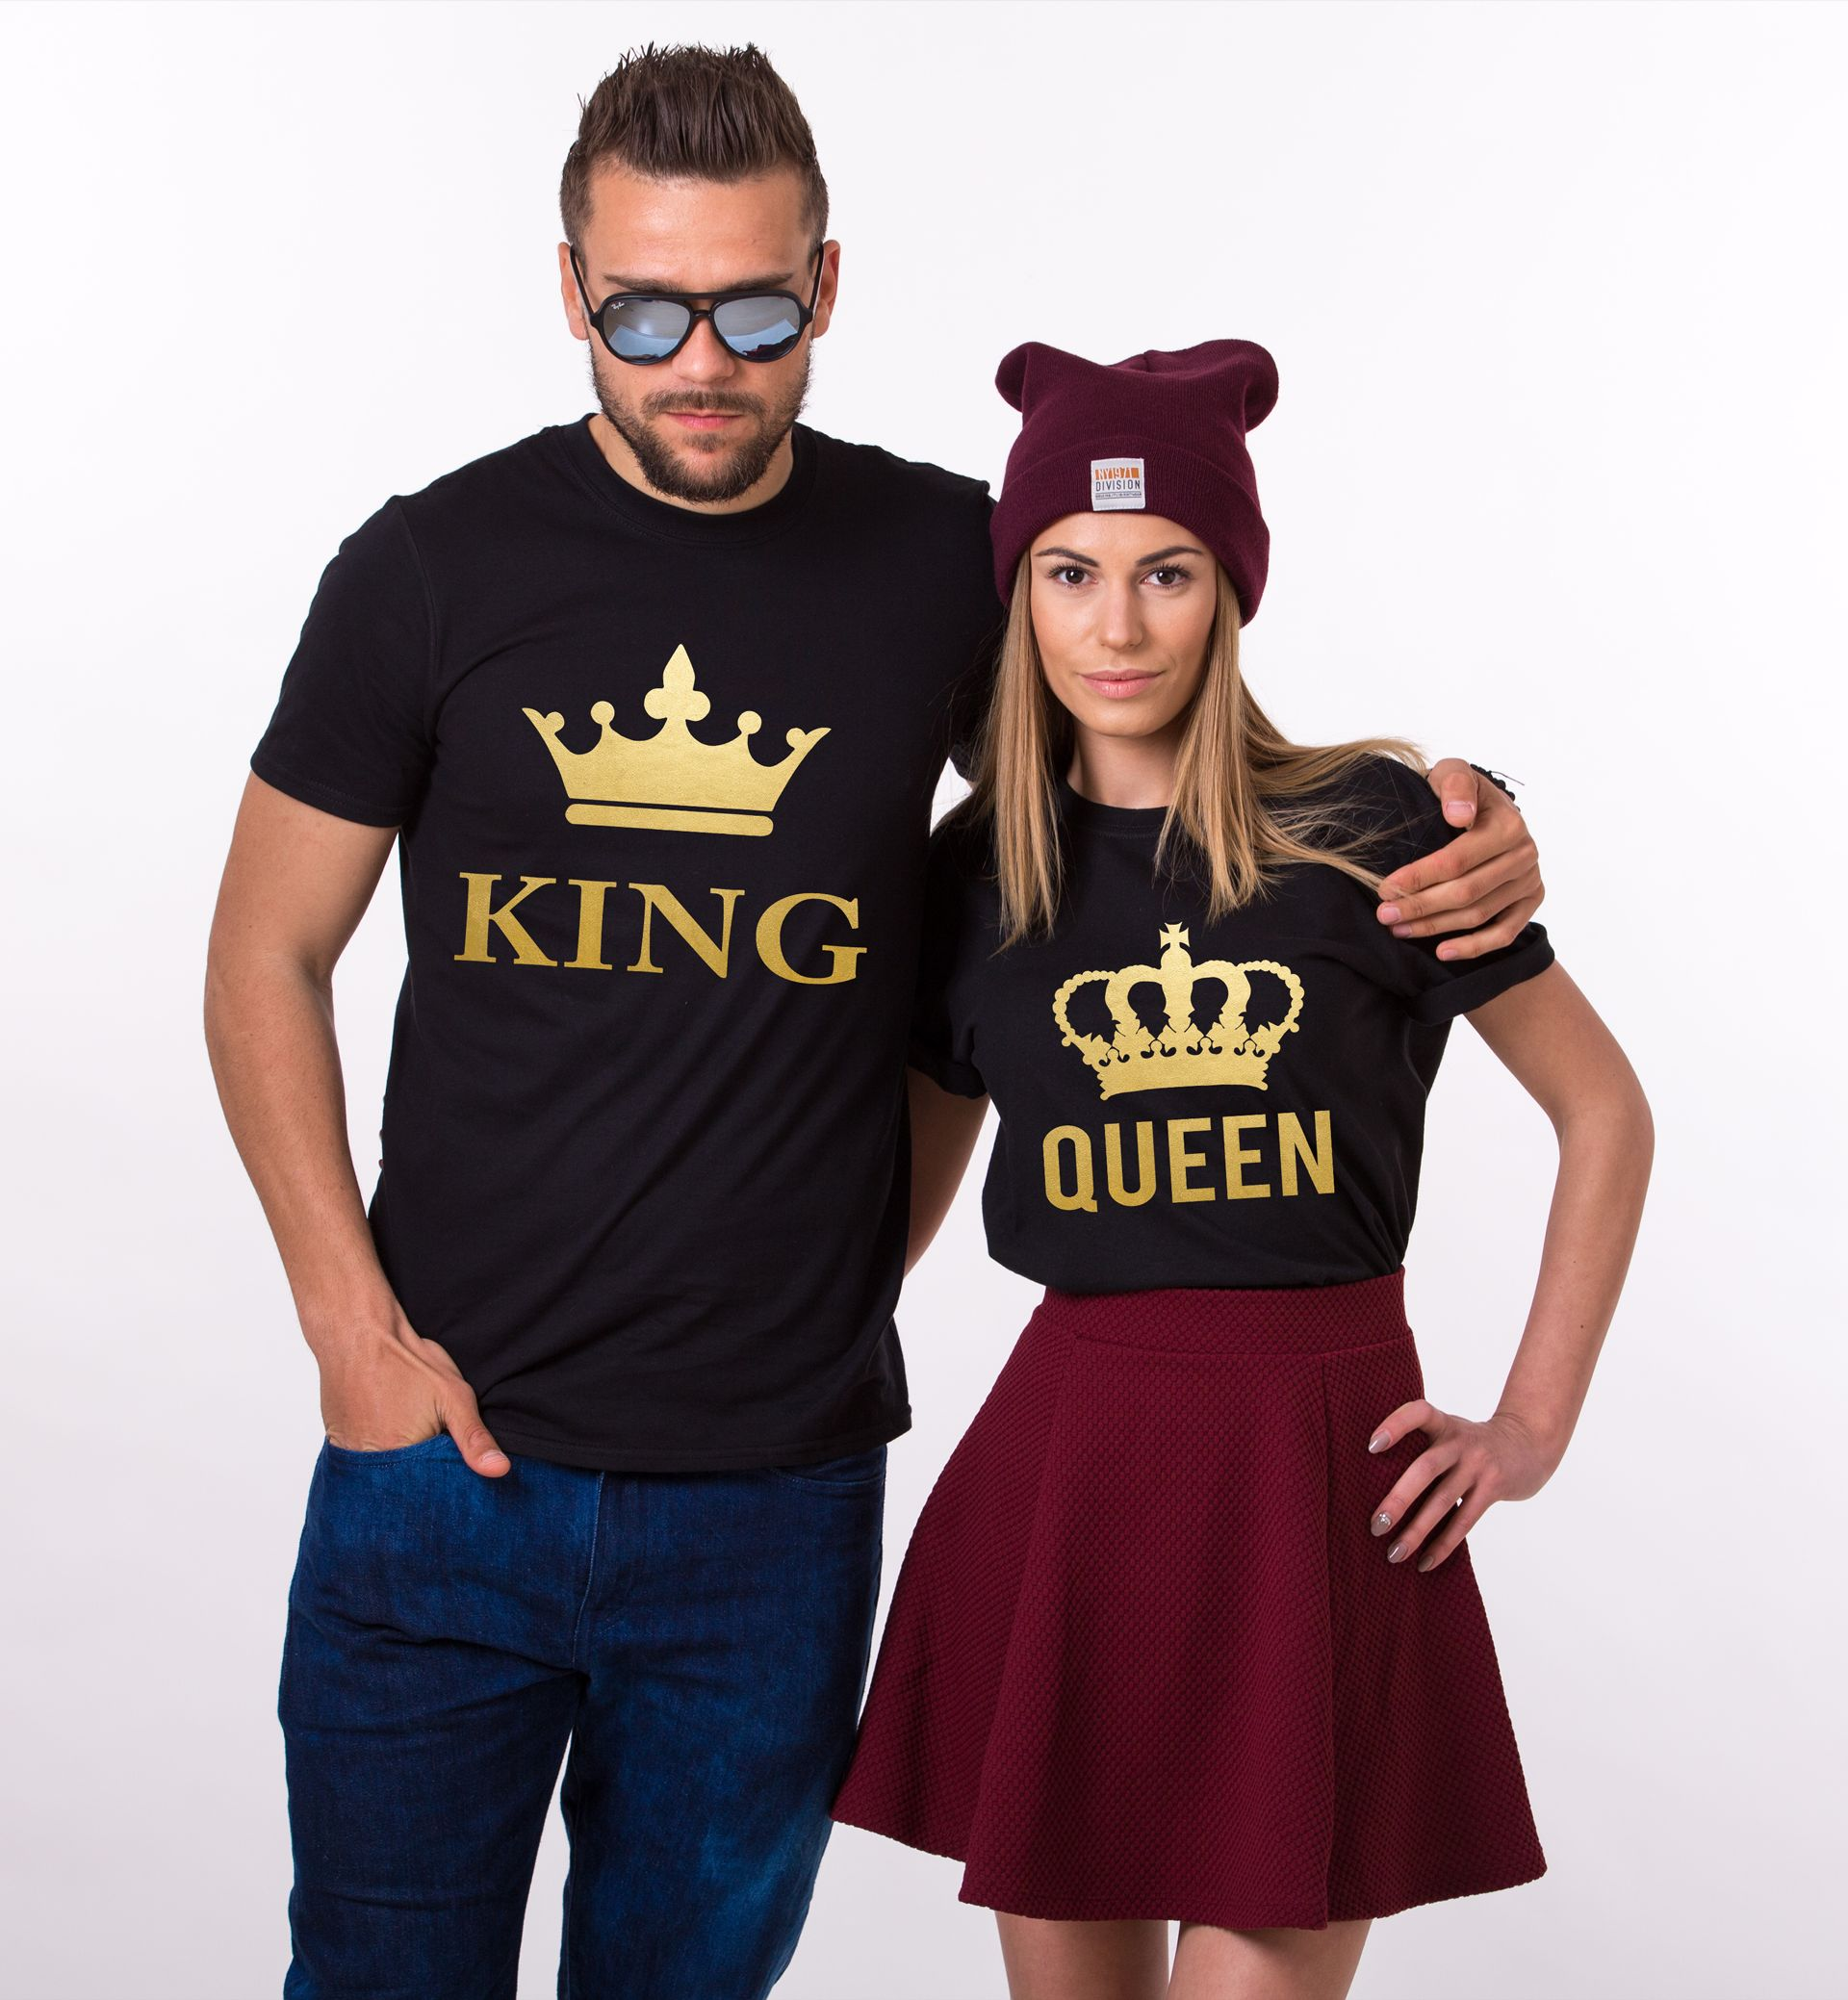 King Queen Couples Shirts, Matching Shirts, Couples T-Shirt